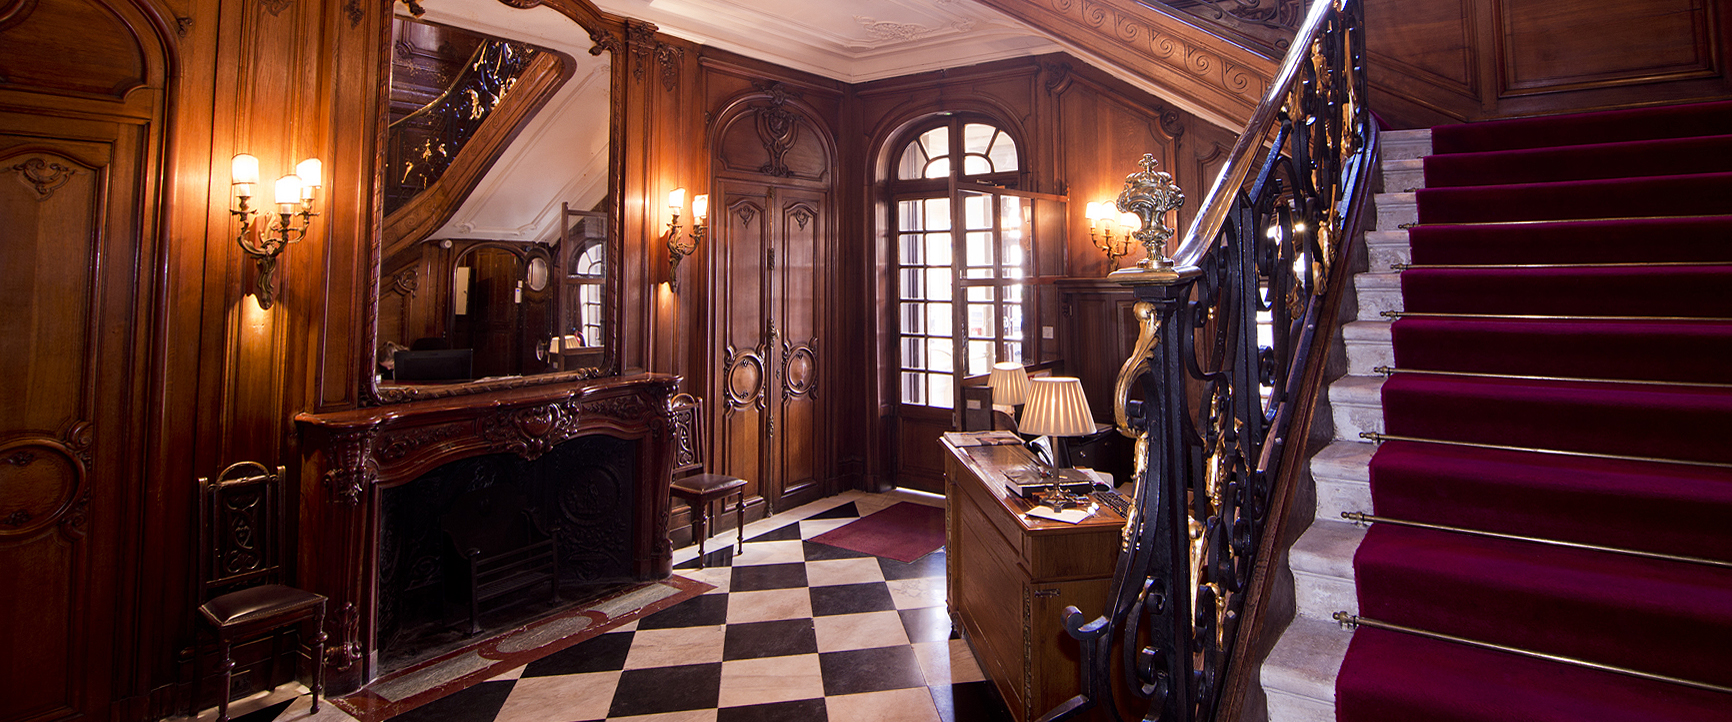 The Savile Club A Private Members Club In Mayfair